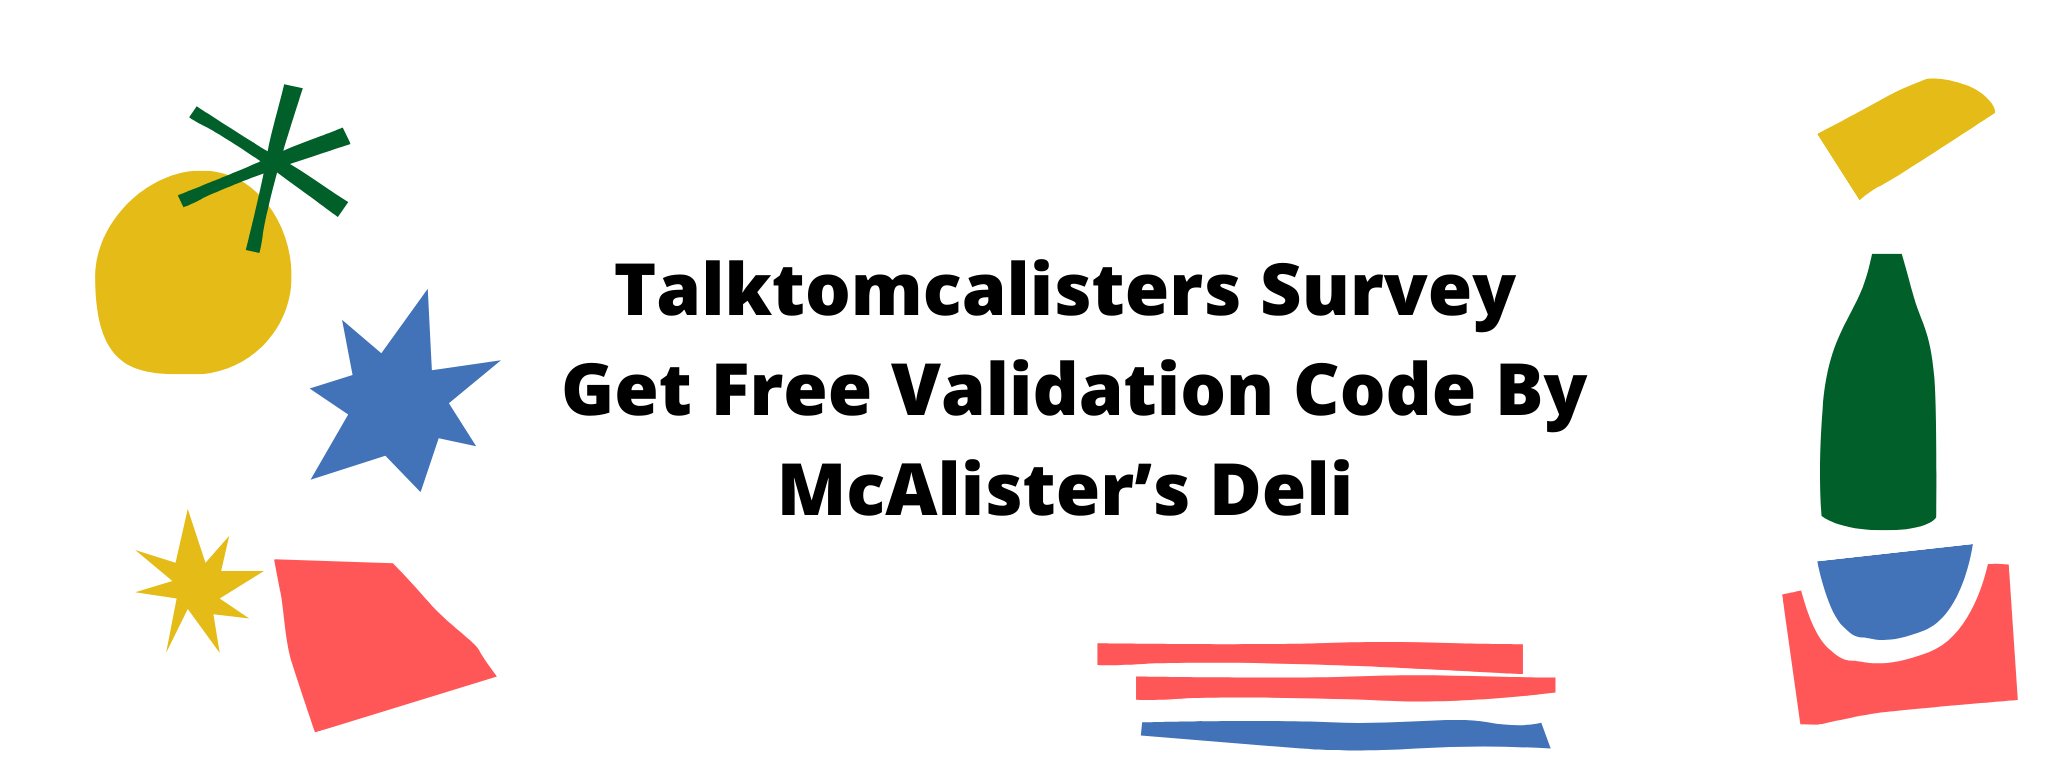 talktomcalisters survey